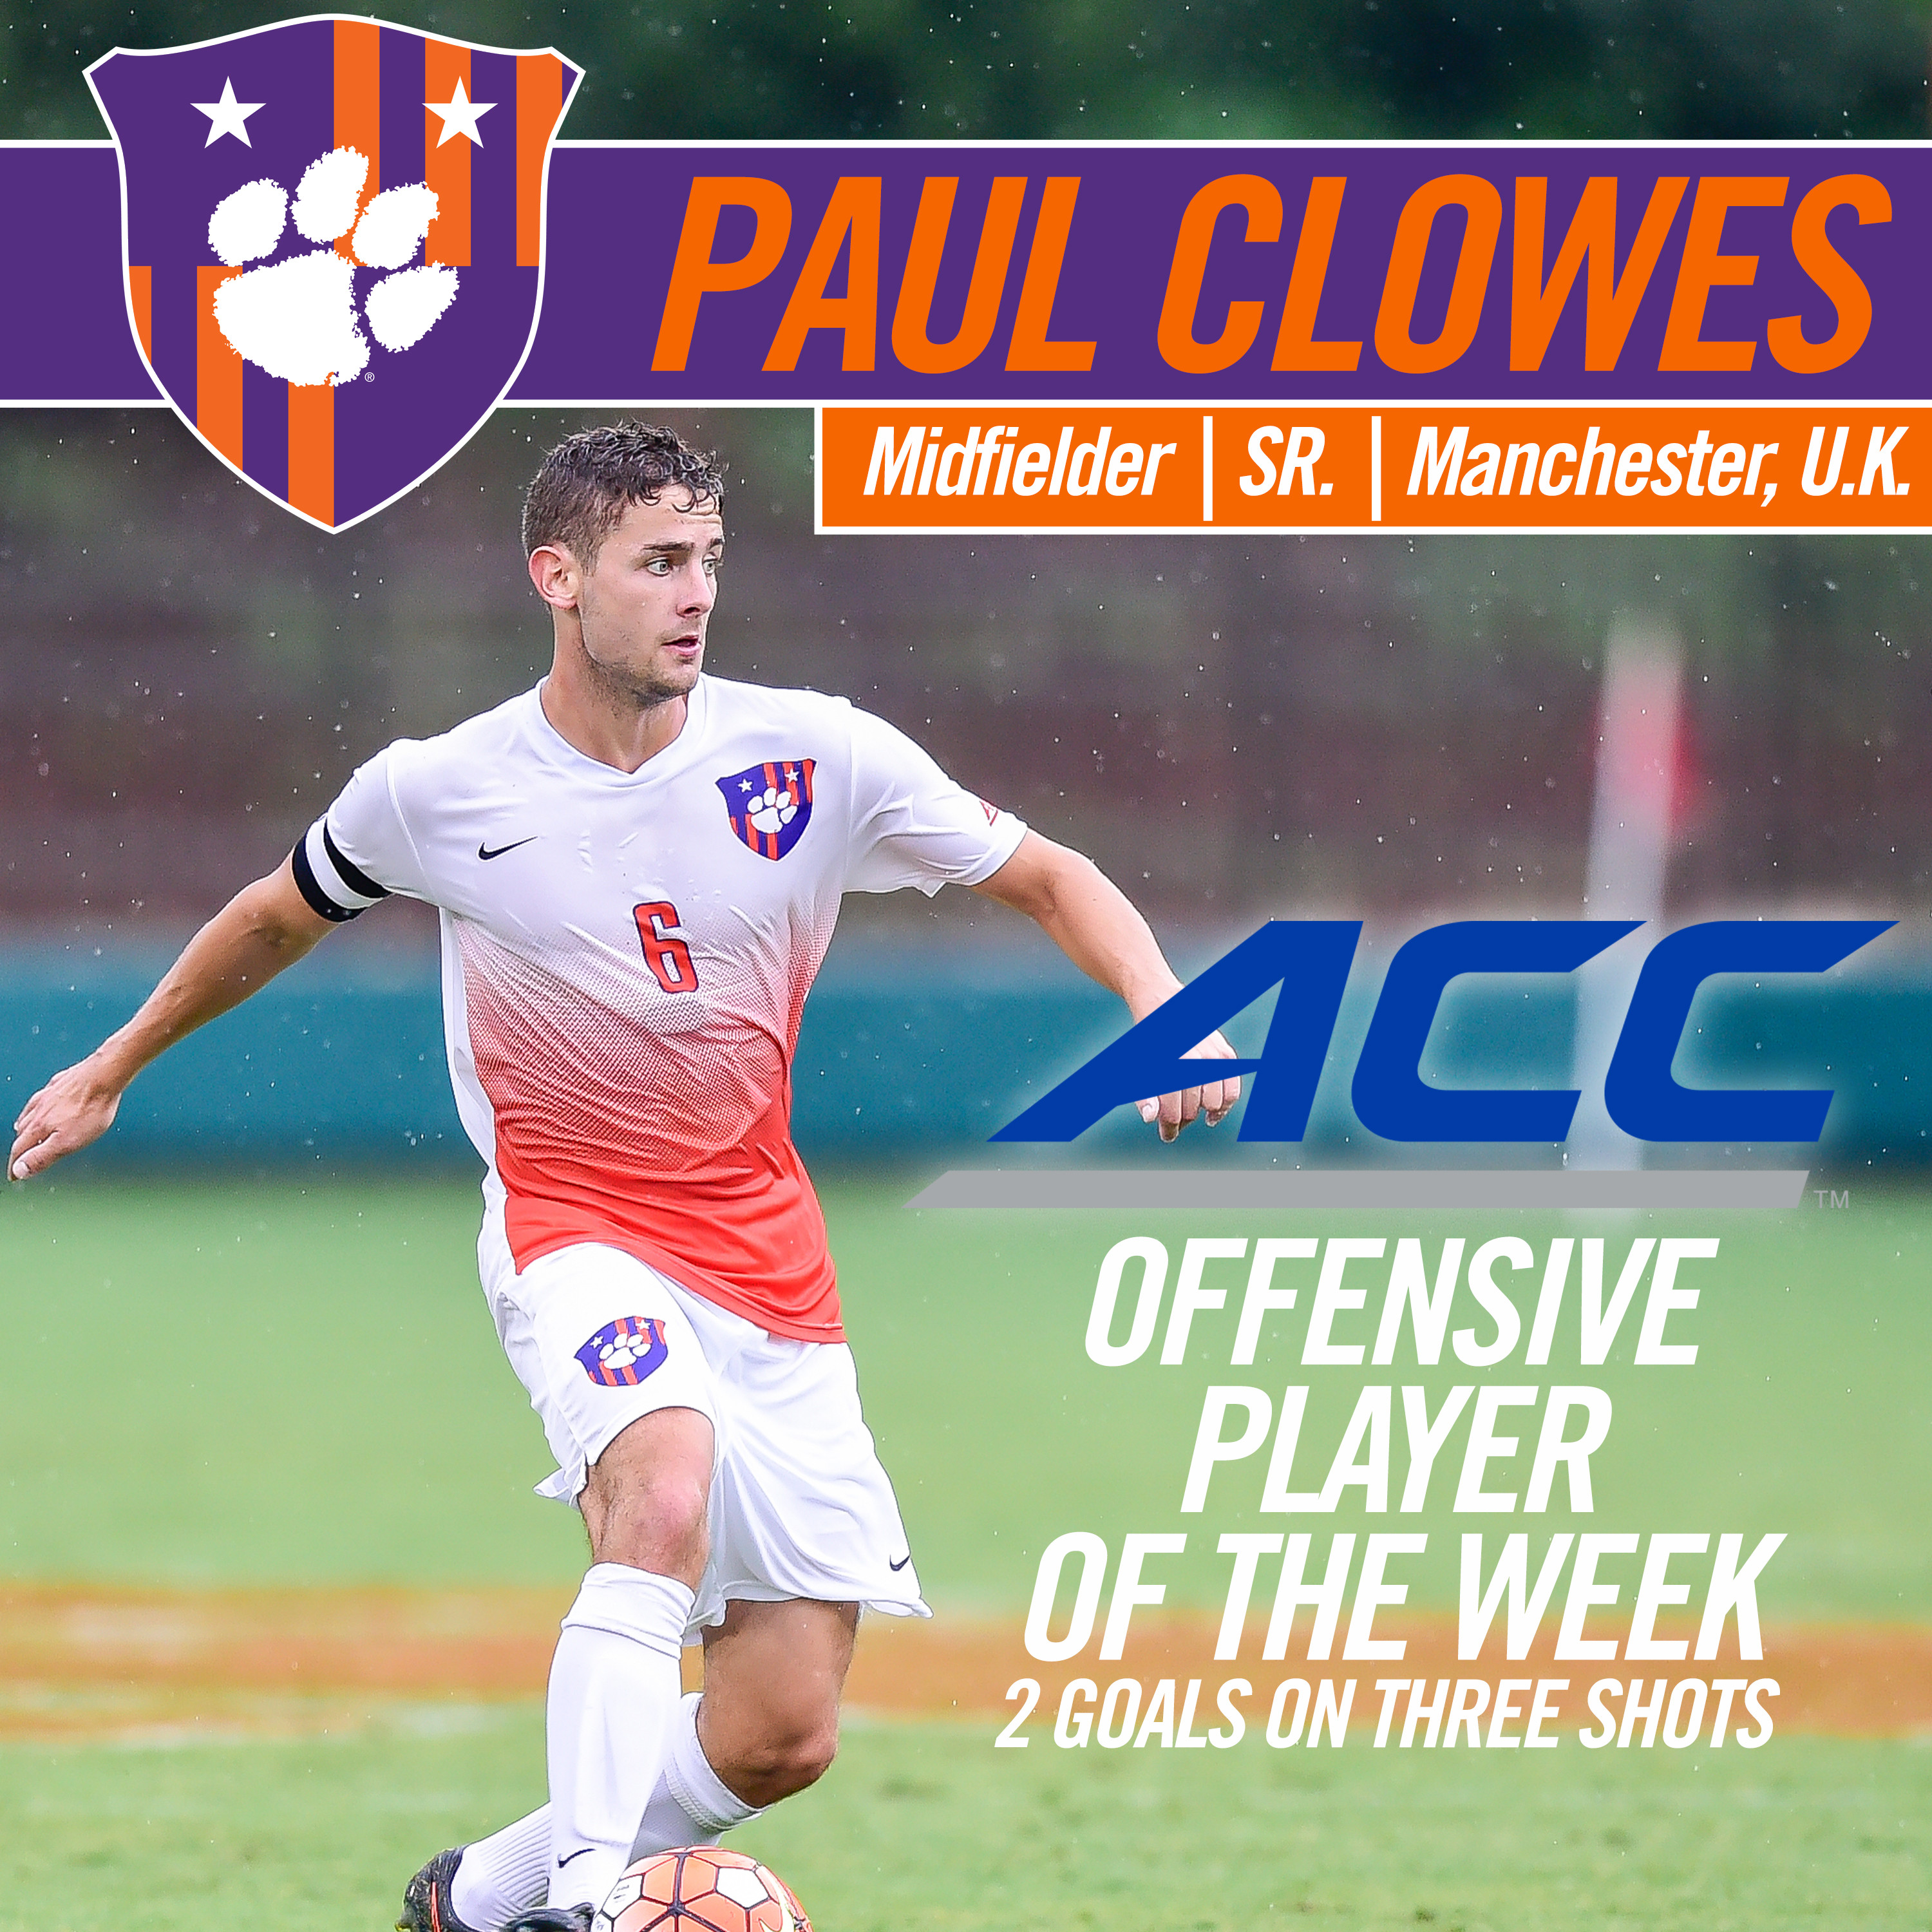 Clowes Named ACC Offensive Player of the Week